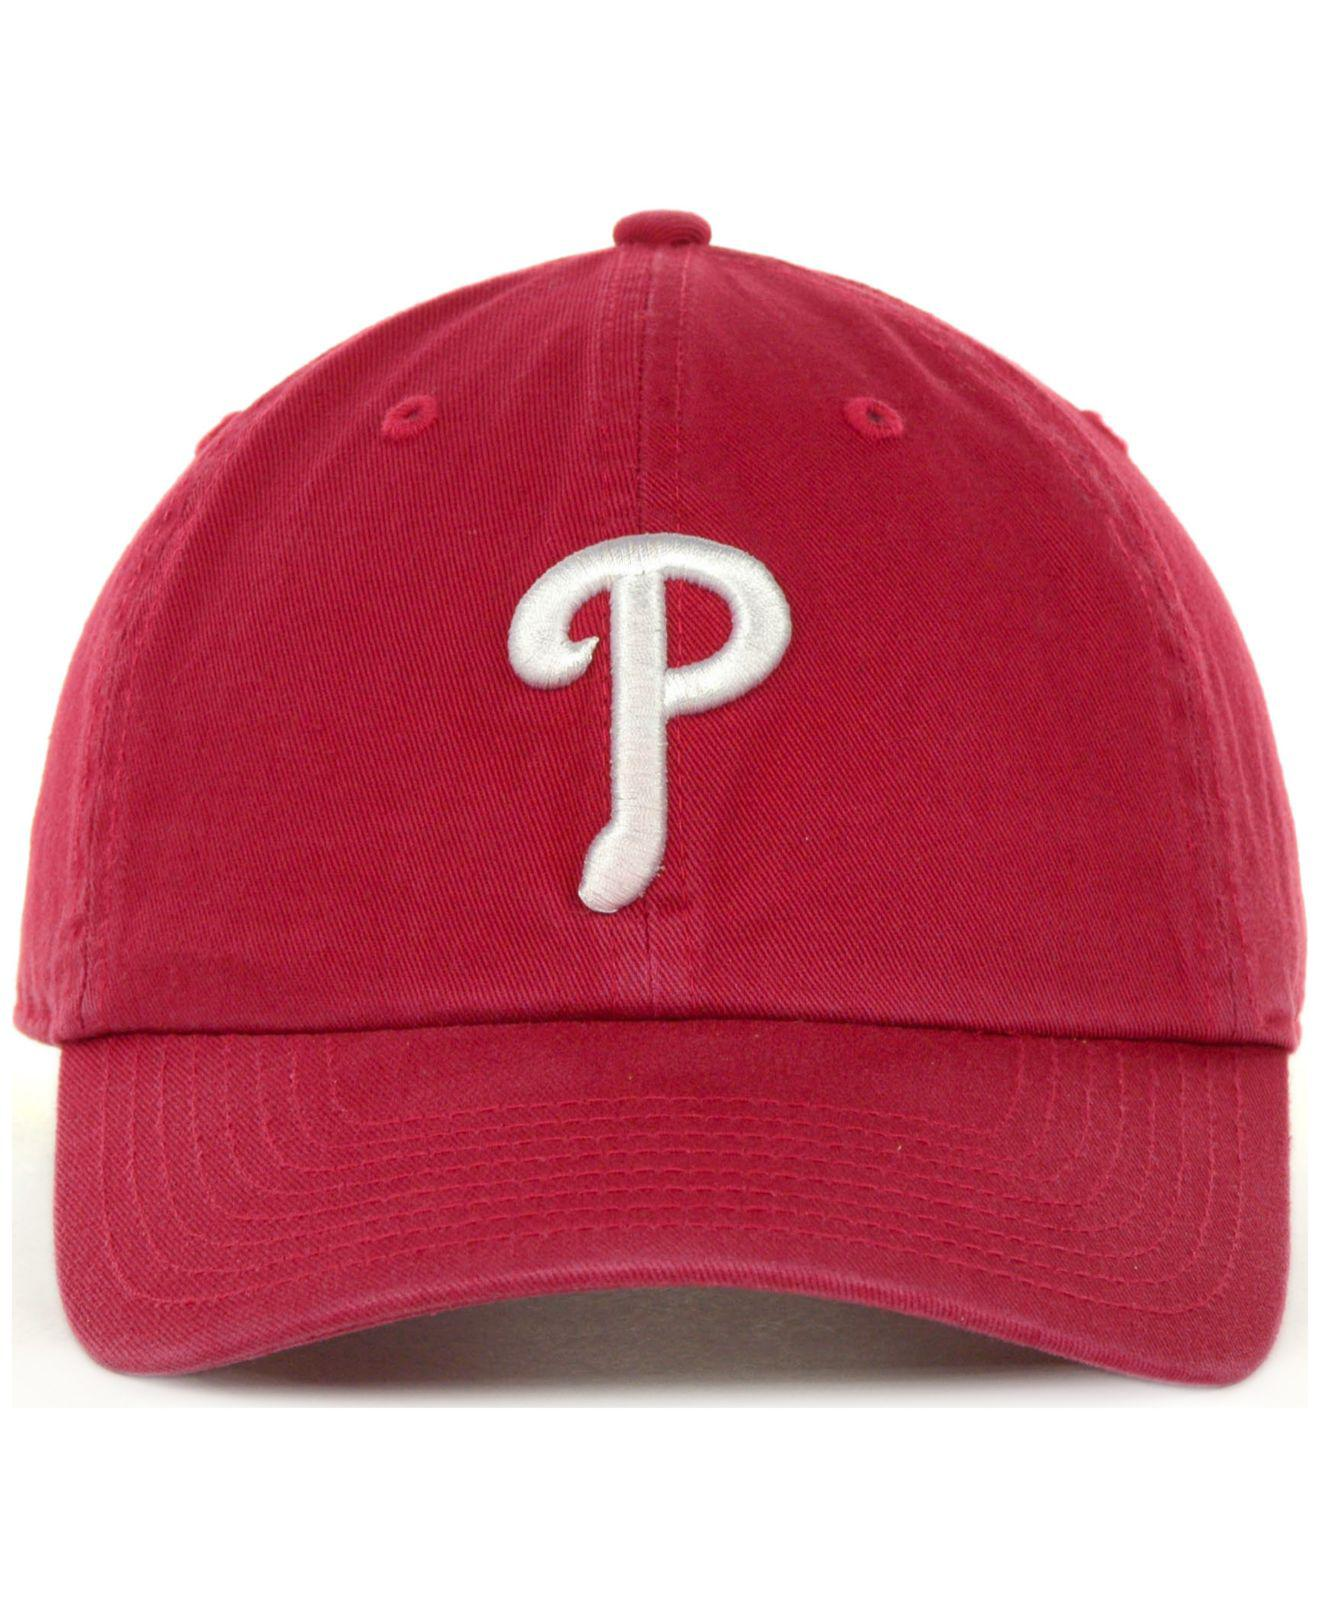 5955188443a Lyst - 47 Brand Philadelphia Phillies Clean Up Hat in Red for Men